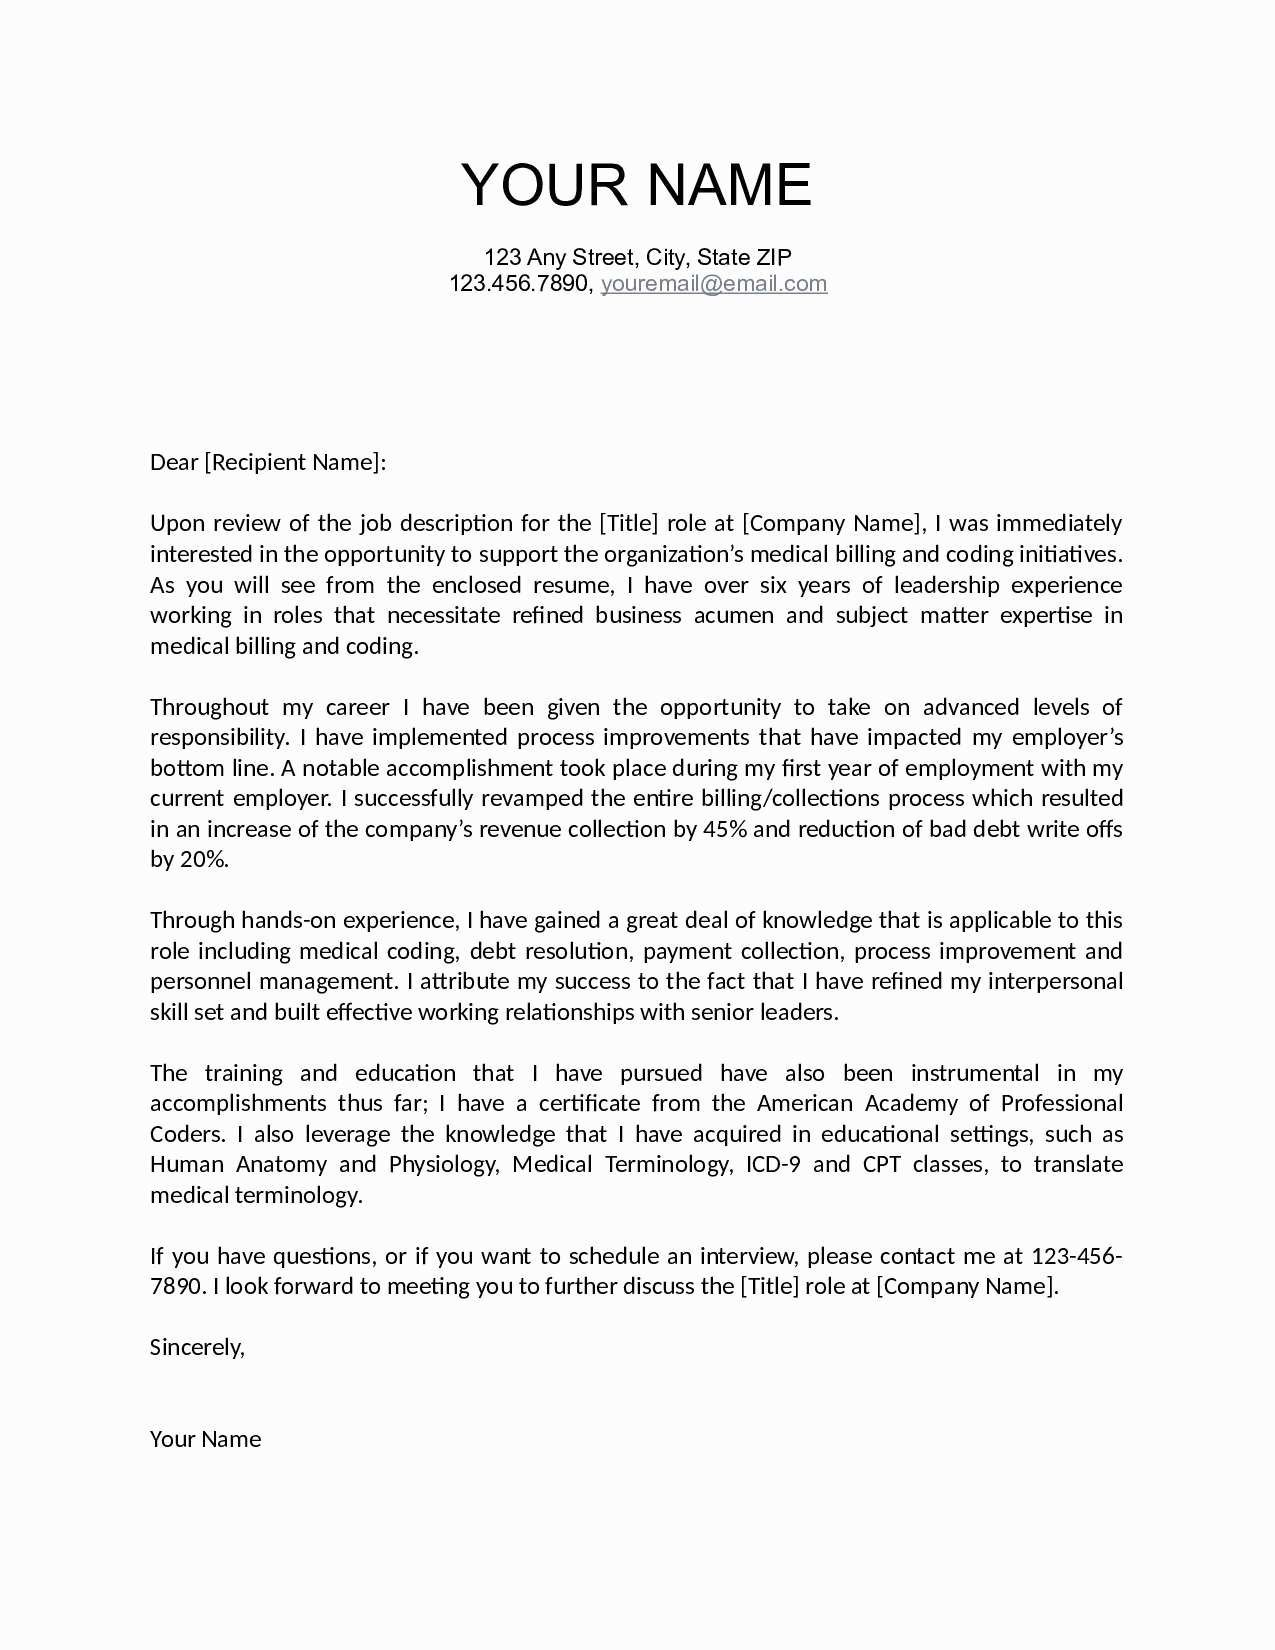 Expert Opinion Letter Template - Cover Letter for Oil and Gas Job Save Lovely Job Fer Letter Template